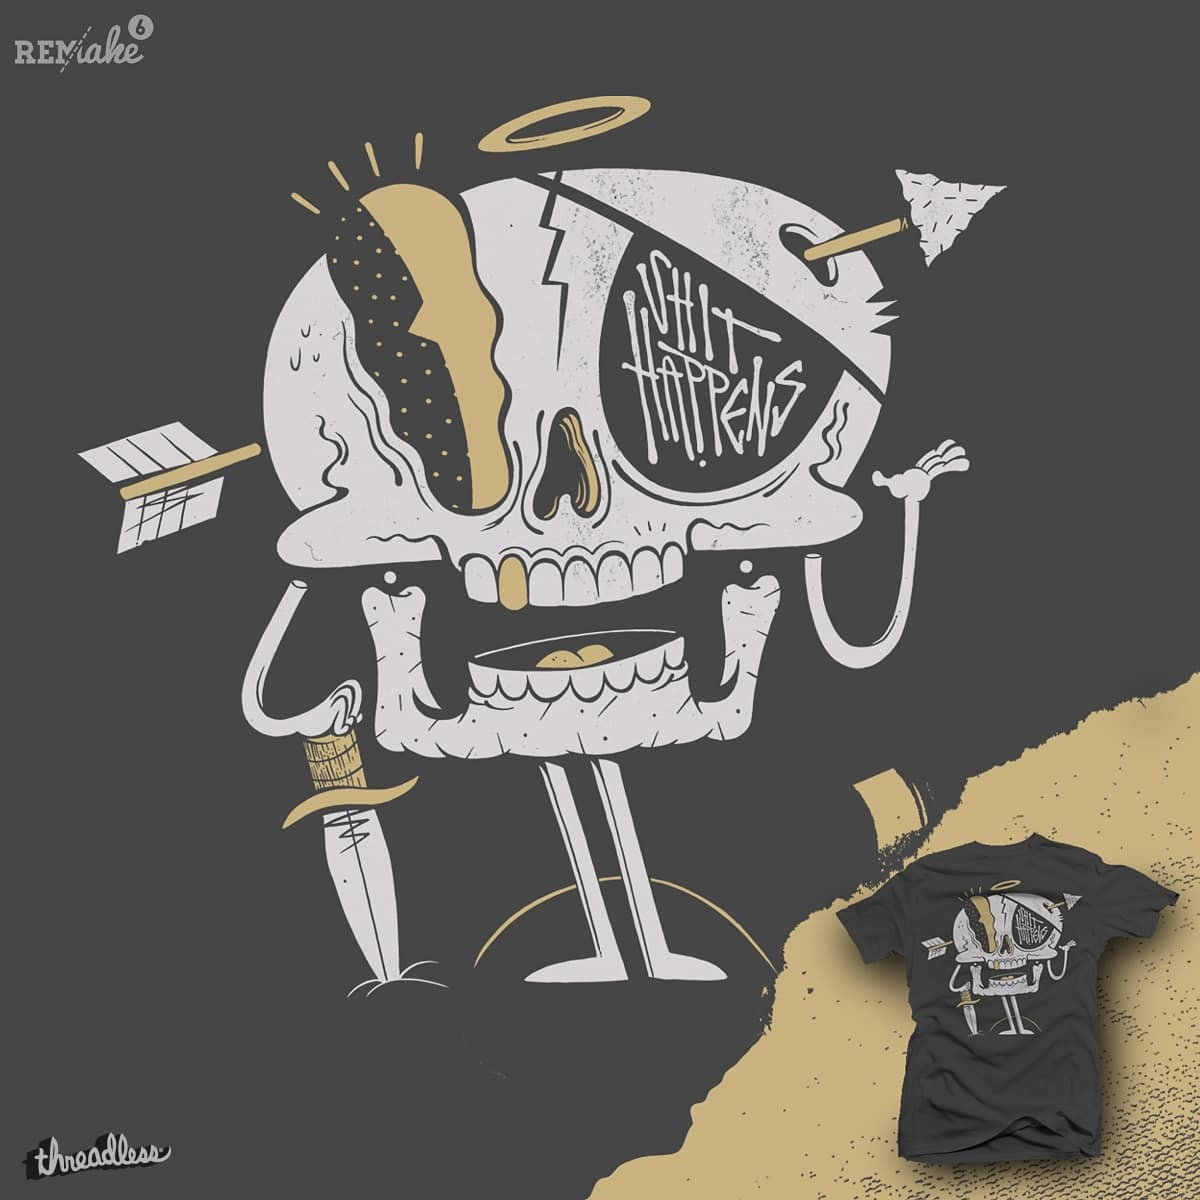 everyone dies by citizen rifferson and mike bautista on Threadless